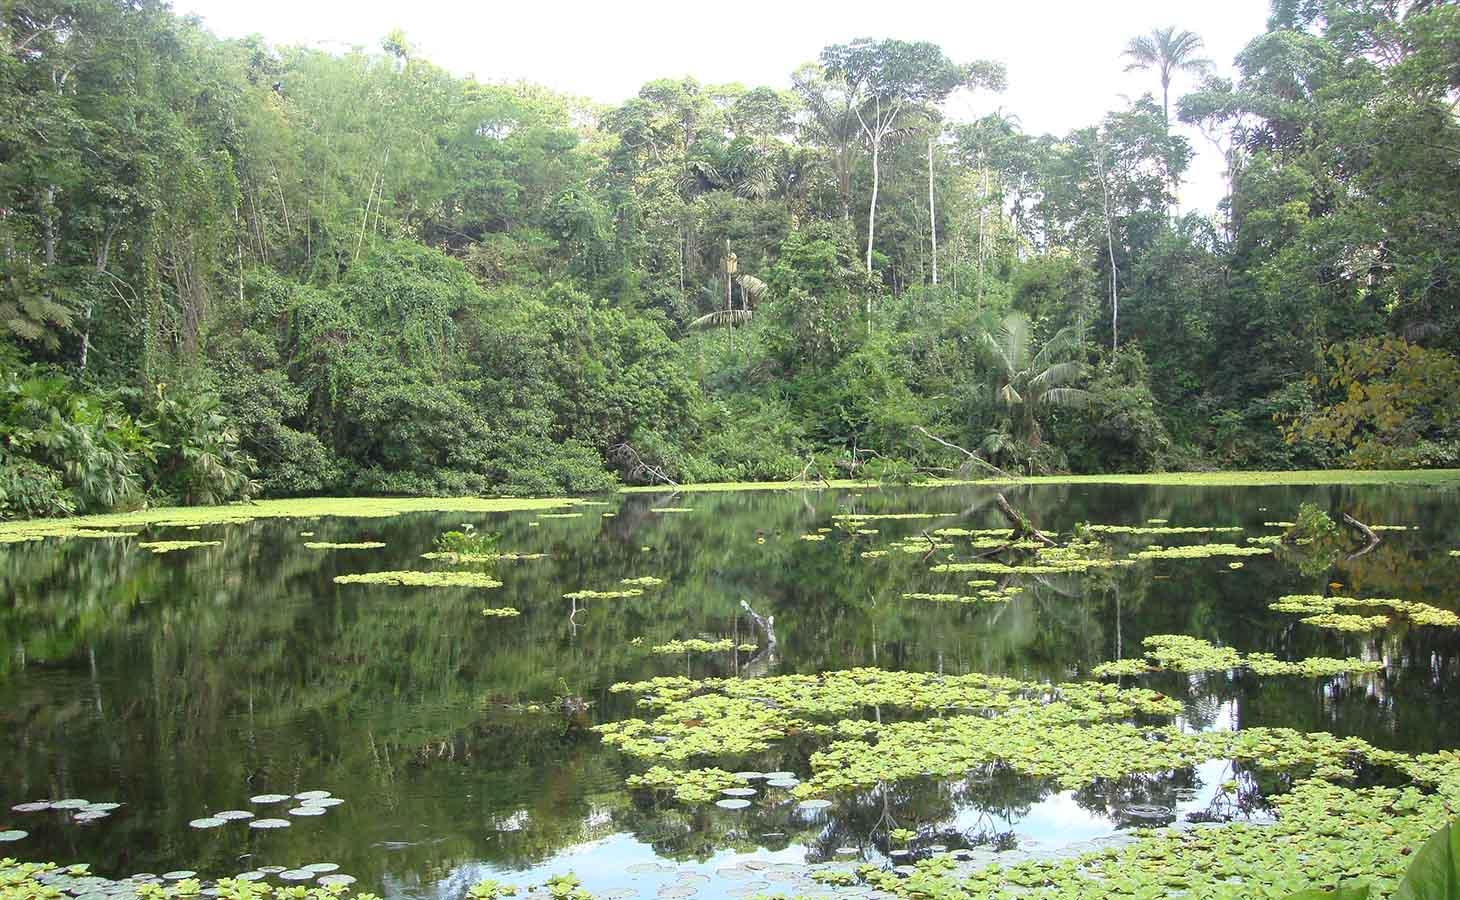 Places you can't miss - The Amazon Rainforest is one of the most biodiverse regions in the world. In Ecuador, this region is just about two hours from Quito, so it's easy to reach. Choose the places you prefer, and plan your trip to the adventure.